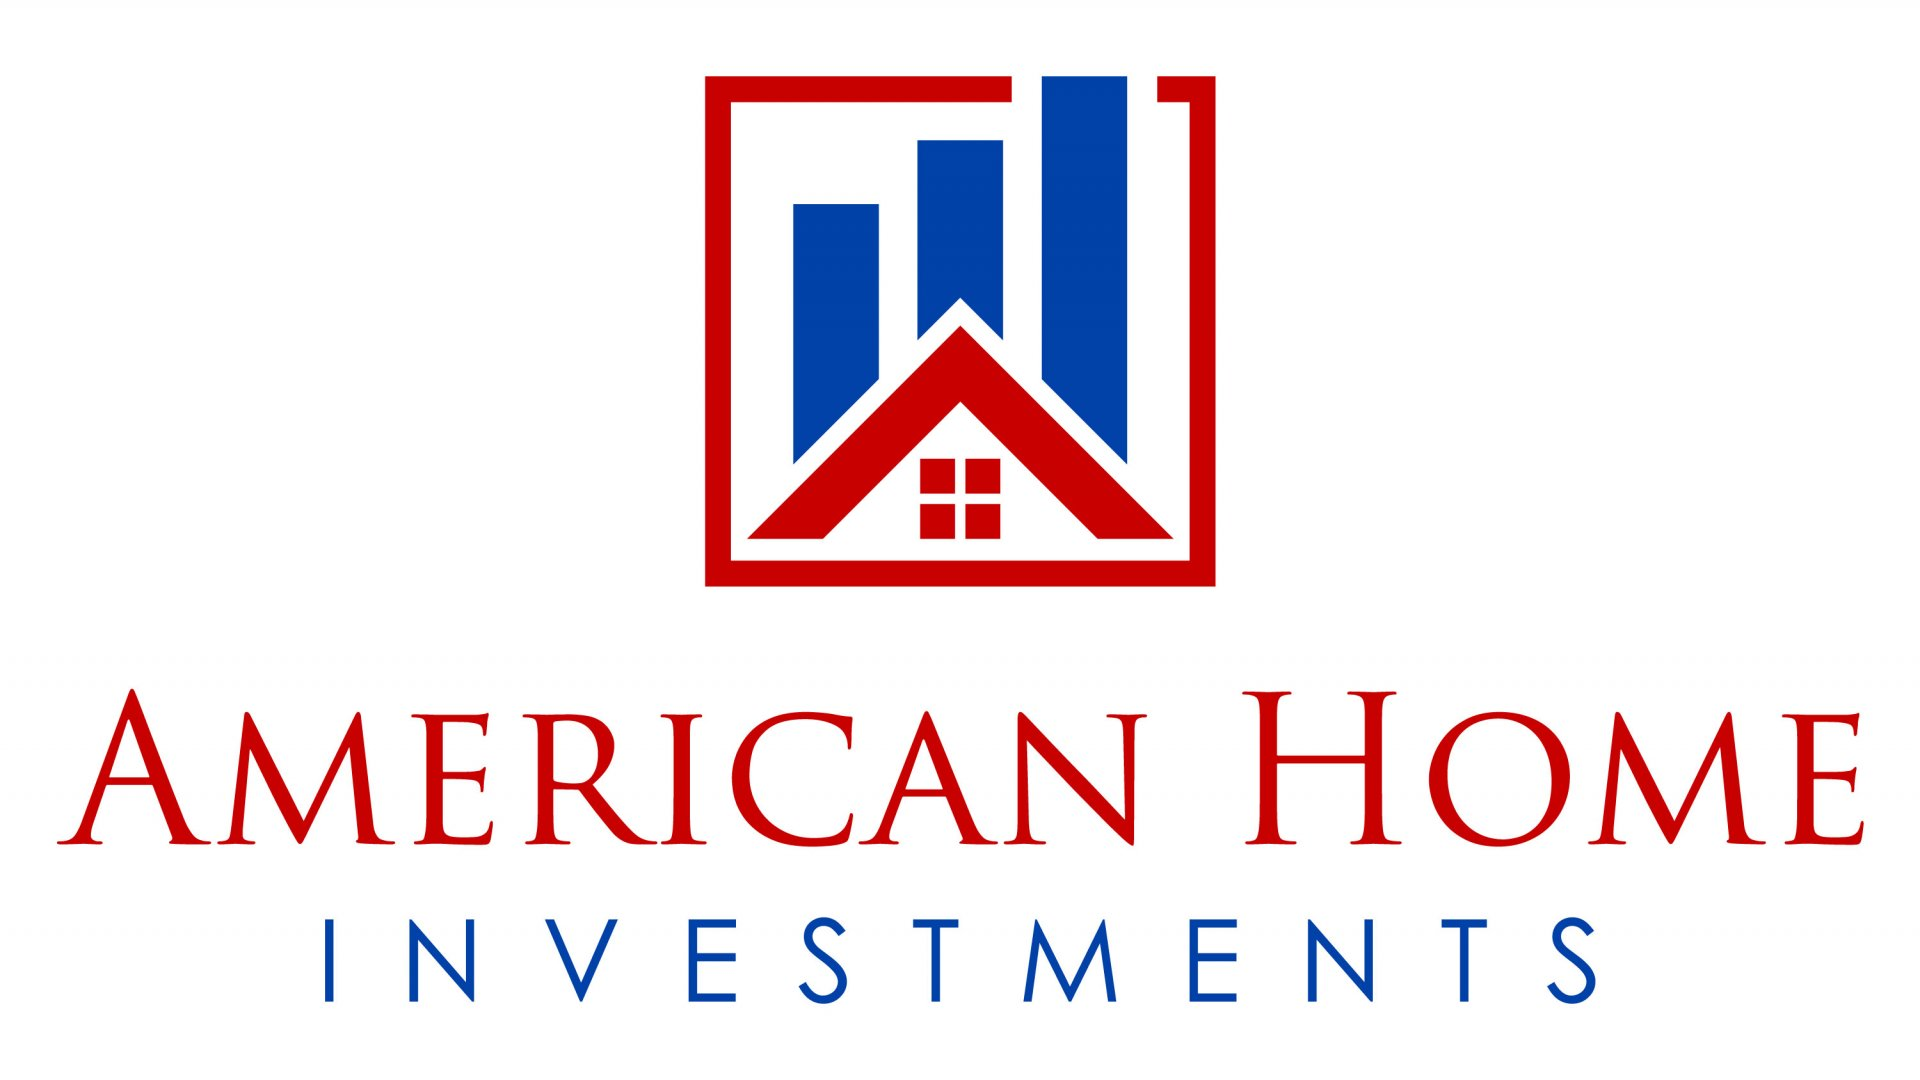 American Home Investments  logo